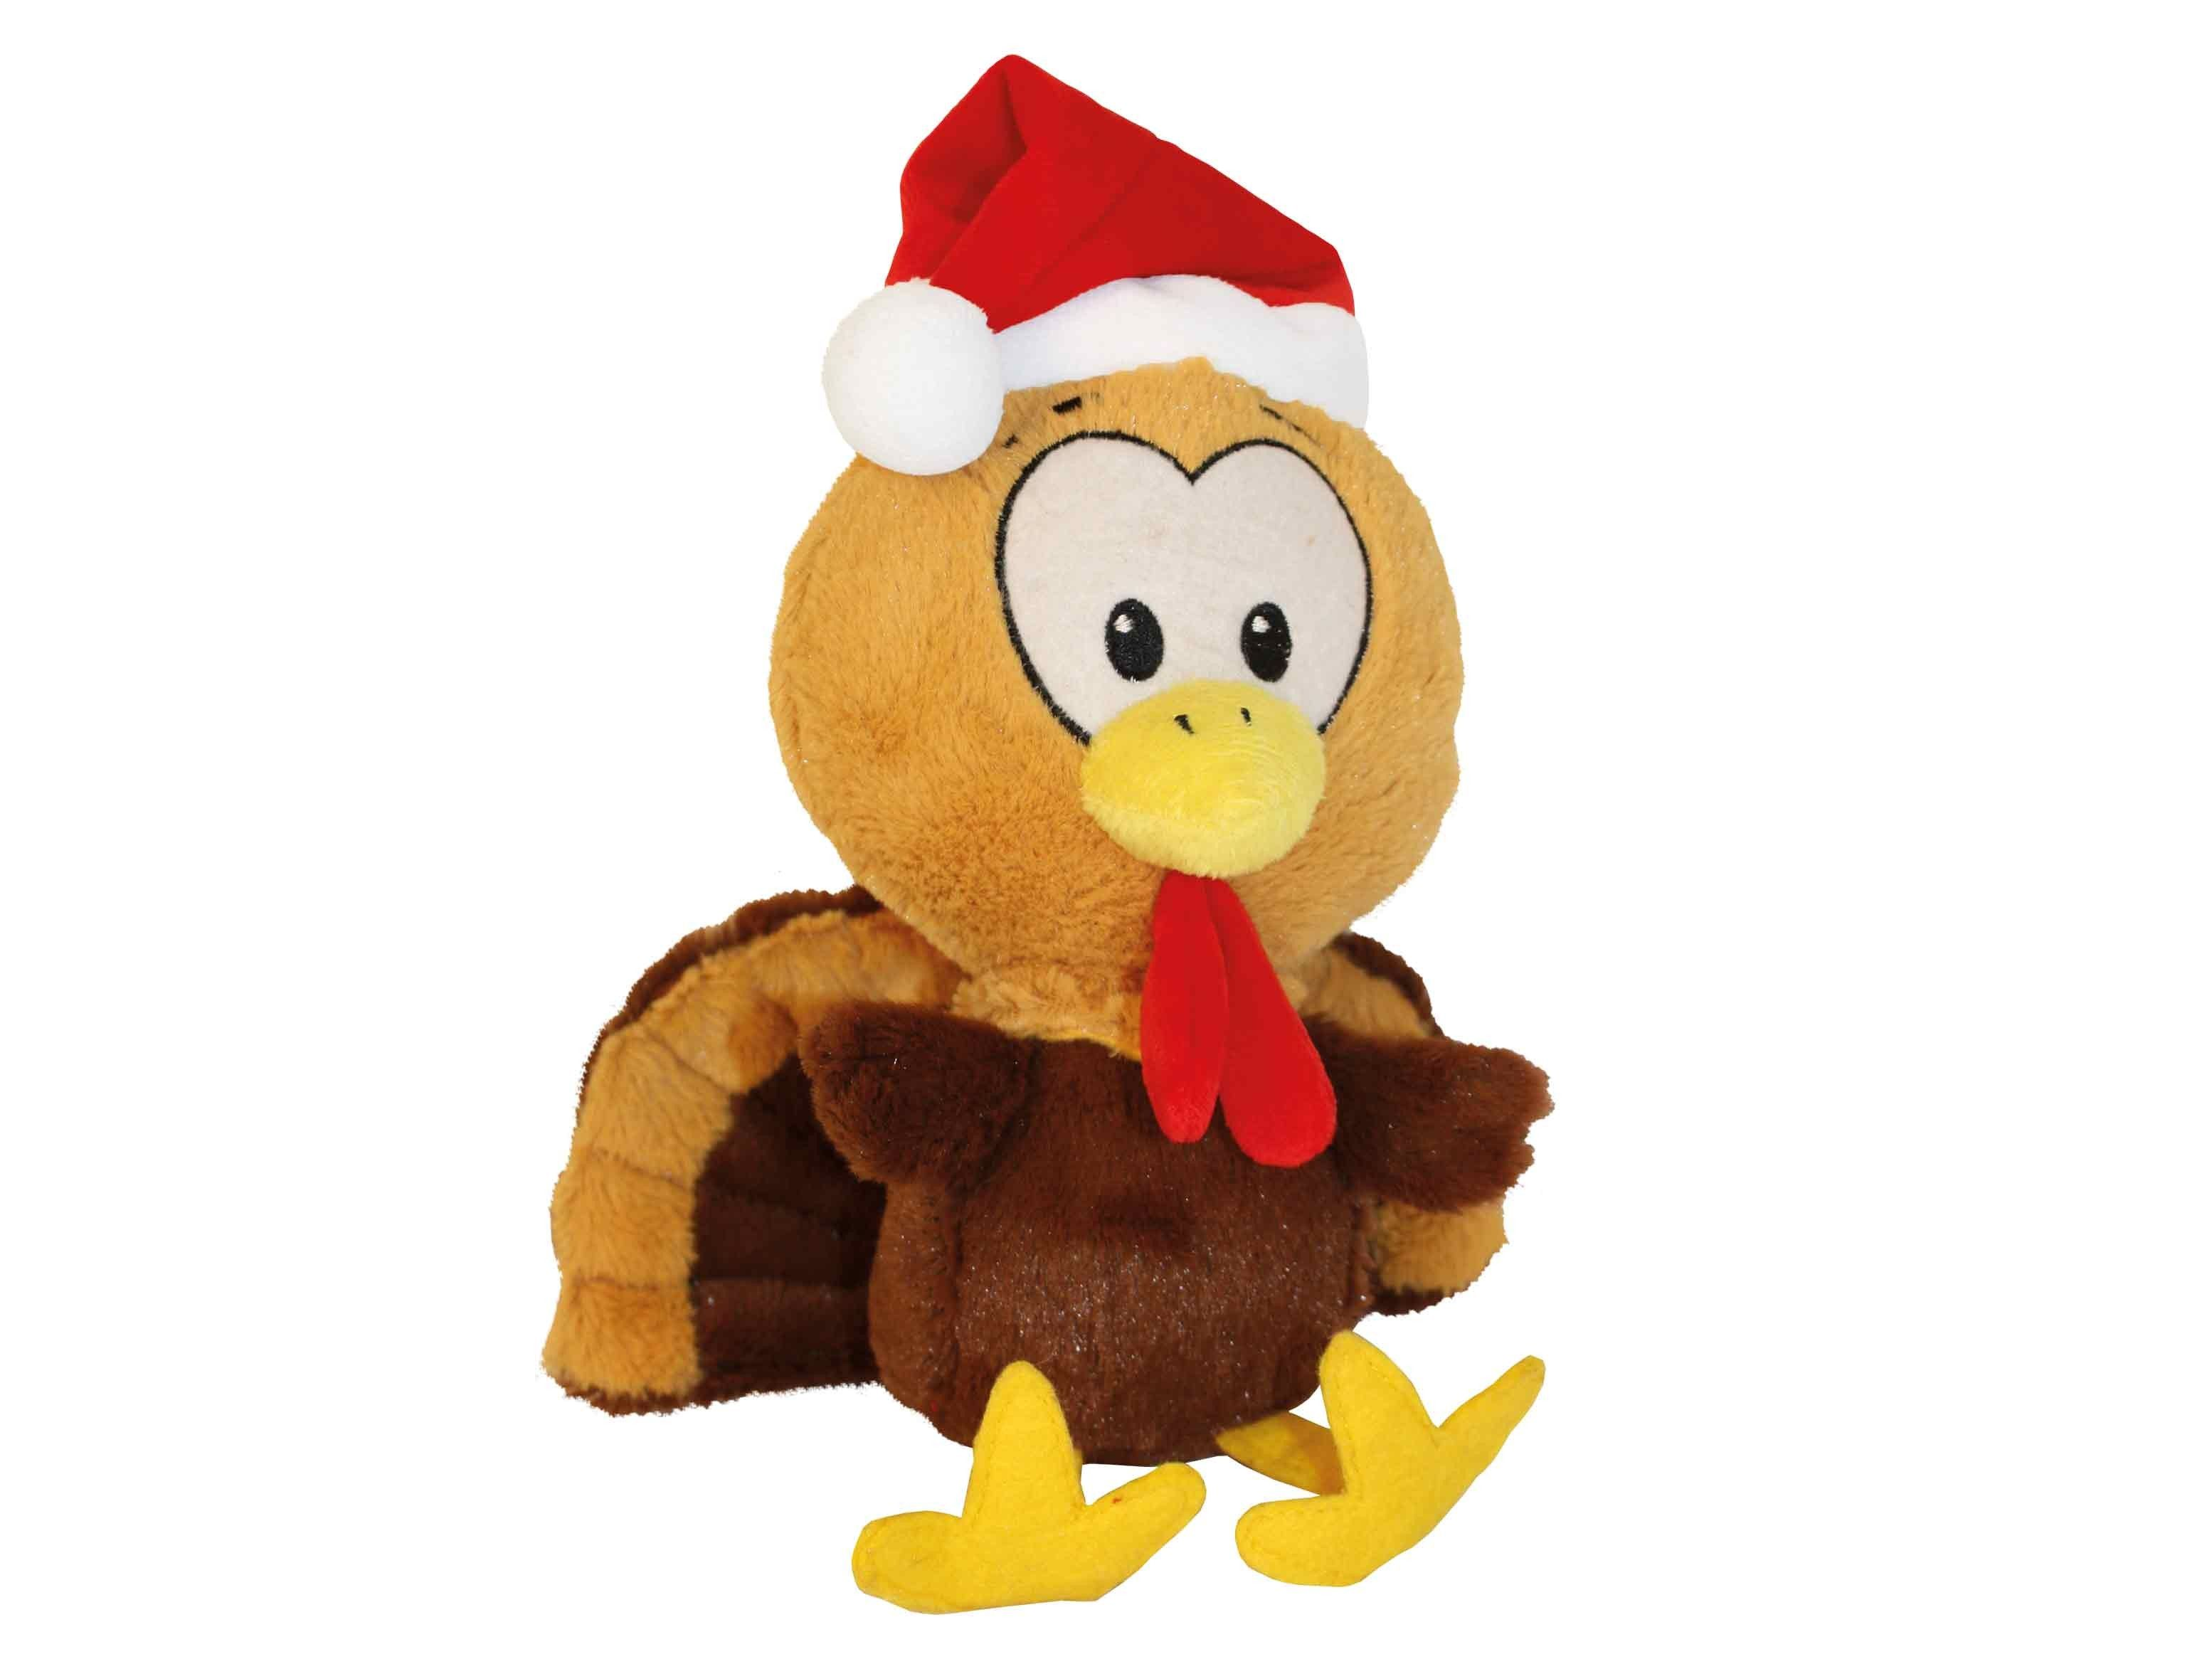 The Tommy Turkey Is A Cute Super Soft Plush Christmas Dog Toy With